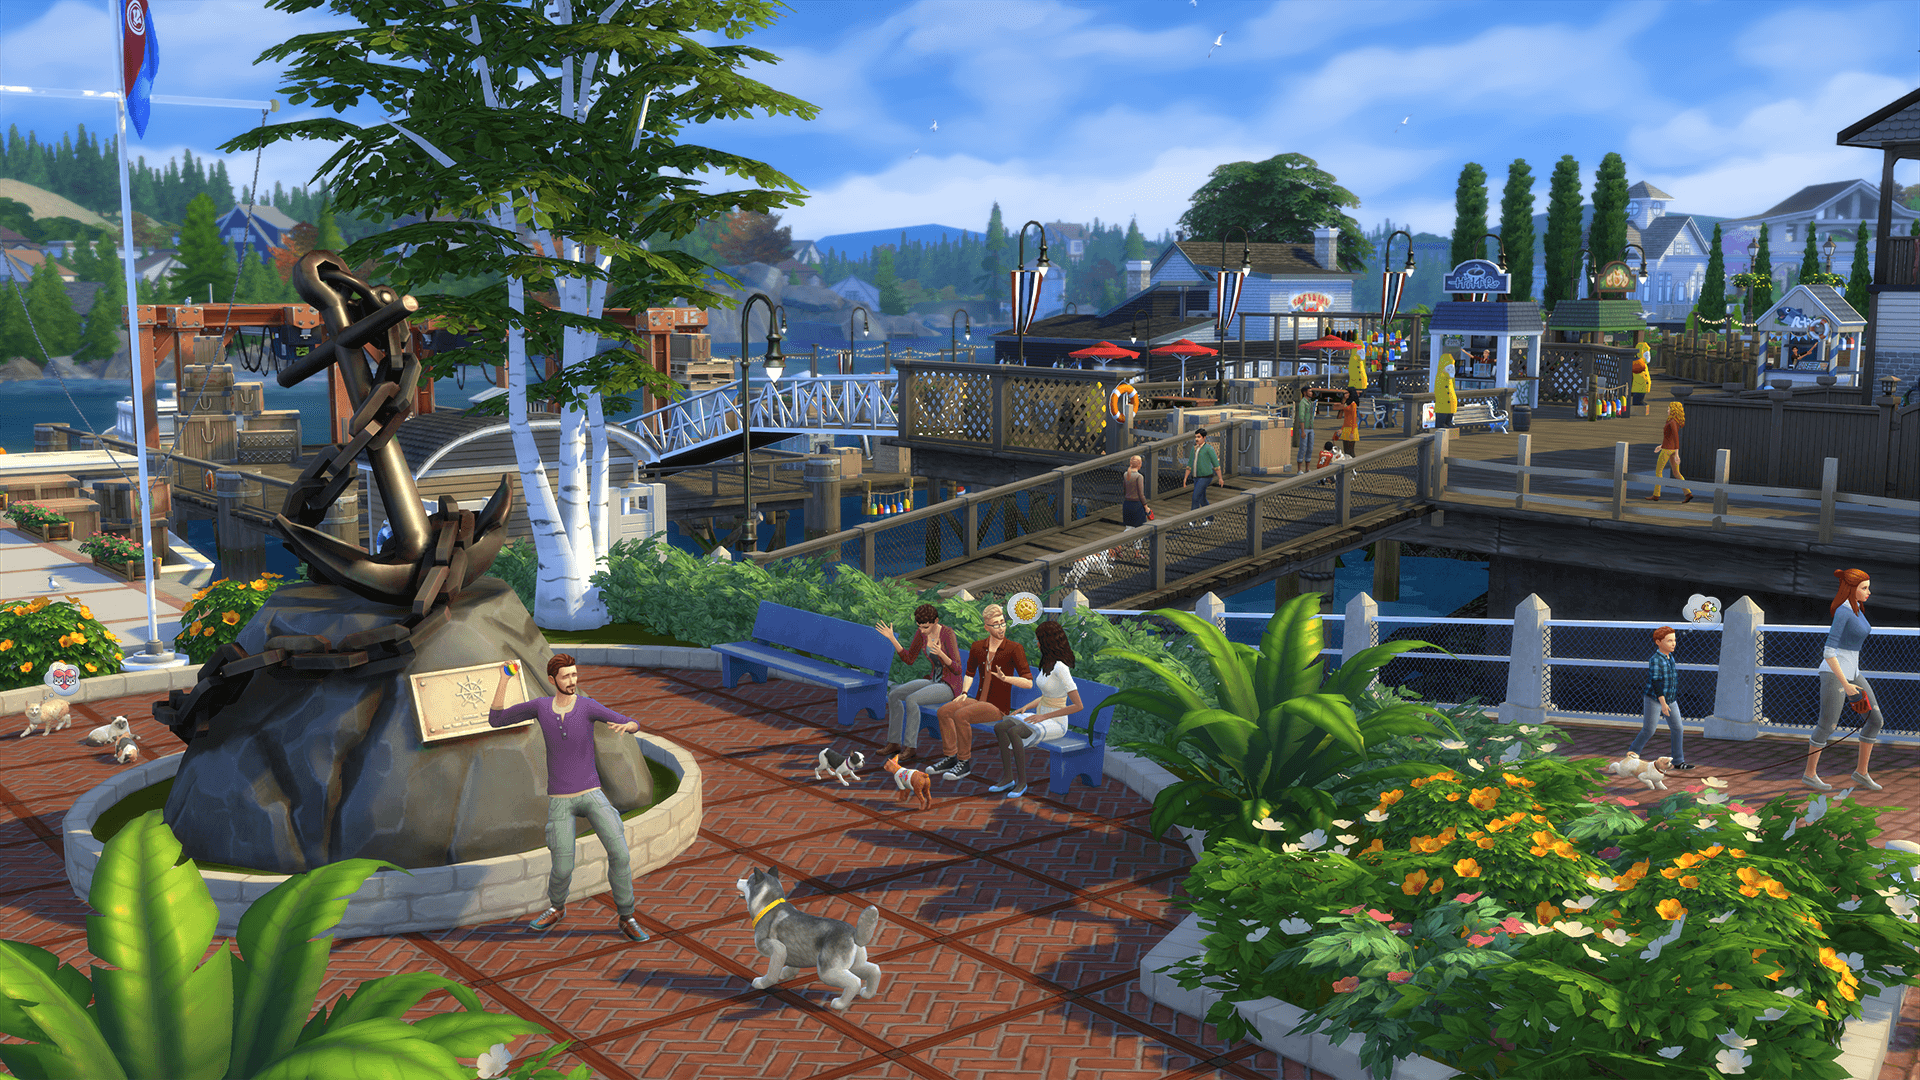 10 The Sims 4 Hd Wallpapers Background Images Wallpaper Abyss